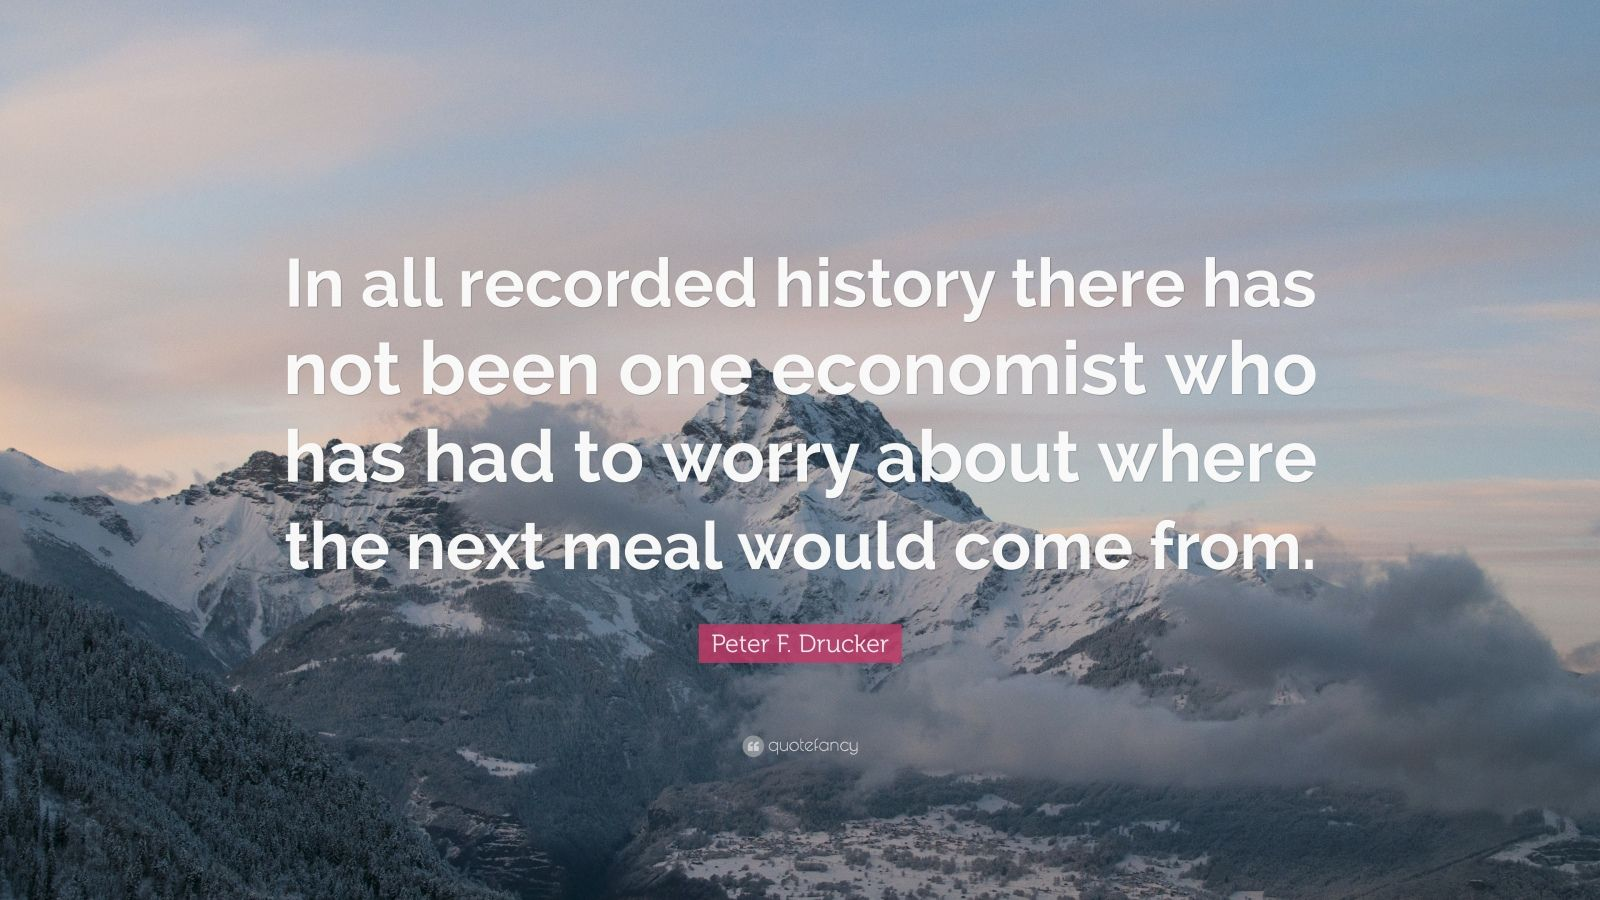 """Peter F. Drucker Quote: """"In all recorded history there has not been one economist who has had to worry about where the next meal would come from."""""""